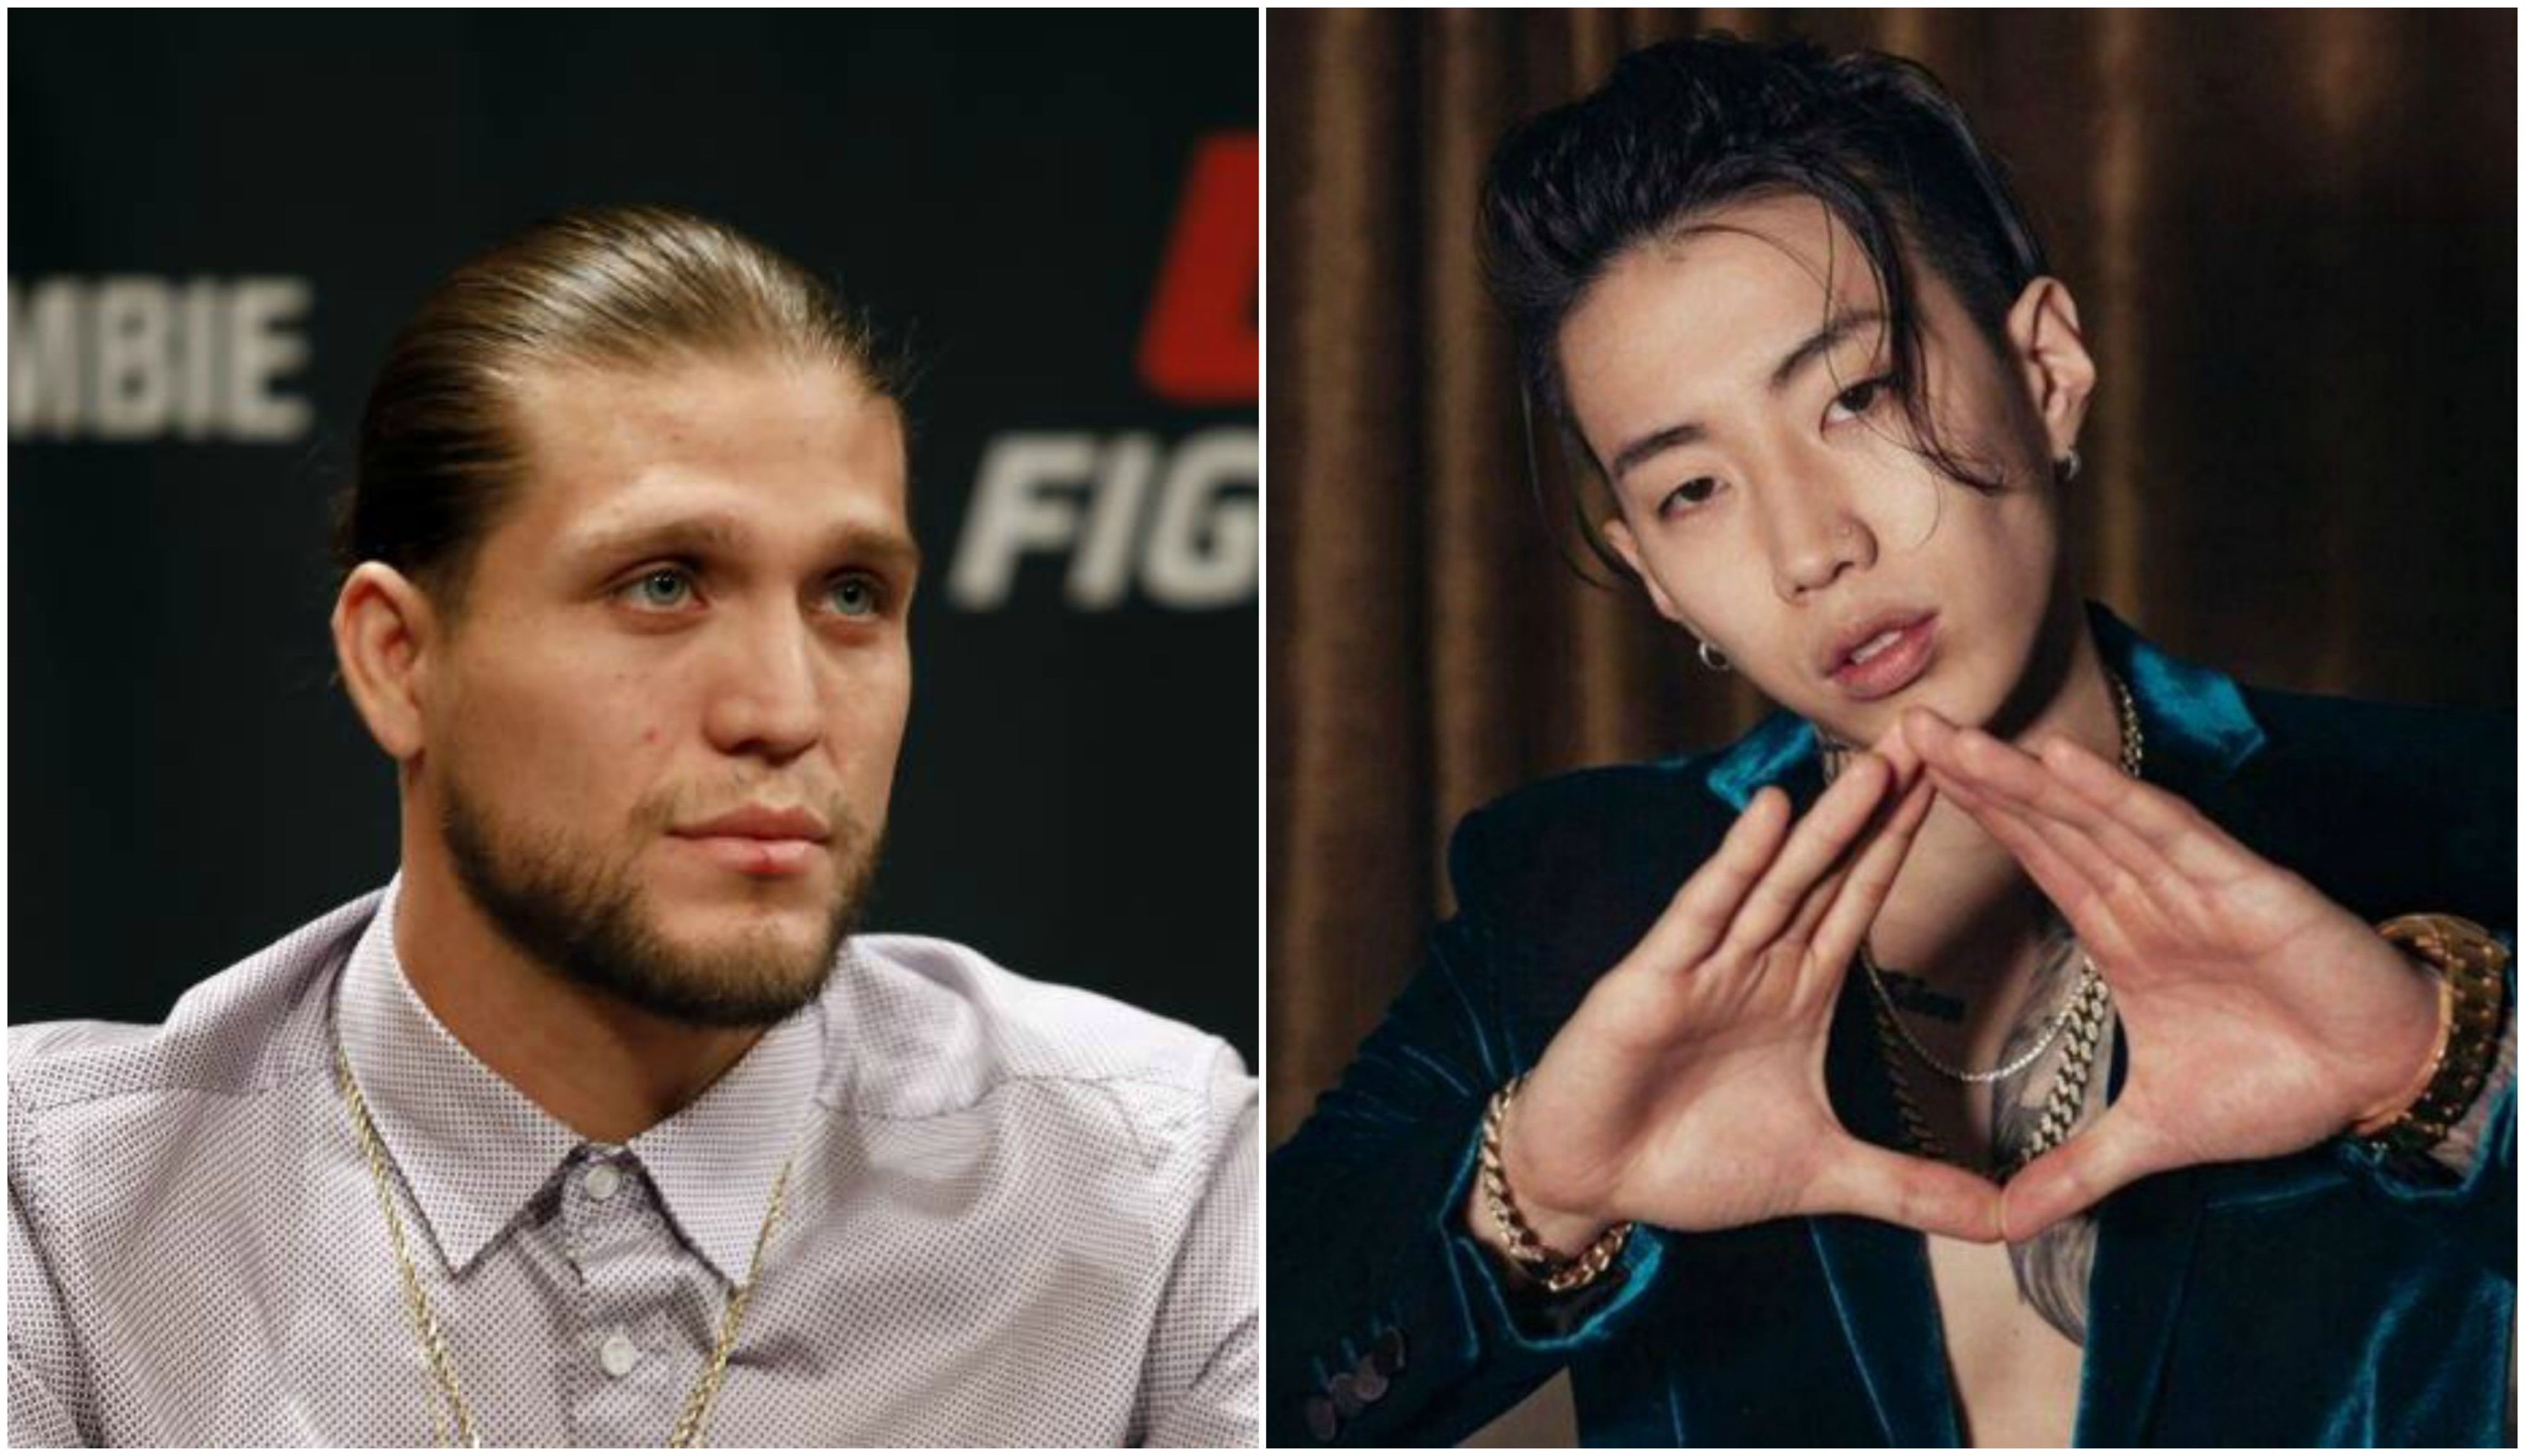 UFC News: Brian Ortega owns up to mistake and issues apology to Jay Park for slapping him - Jay